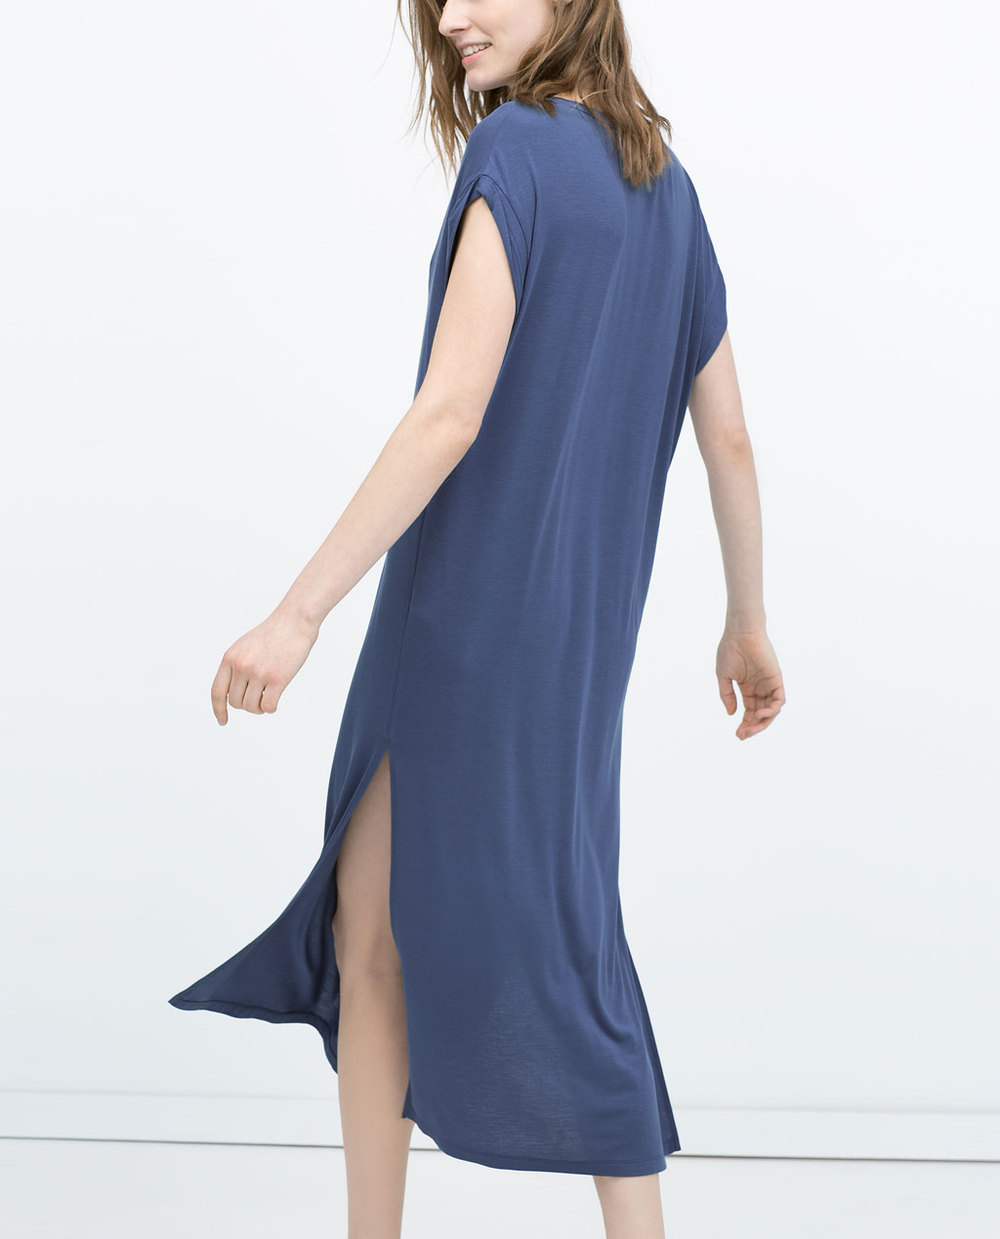 BASIC LONG DRESS 15.99 USD